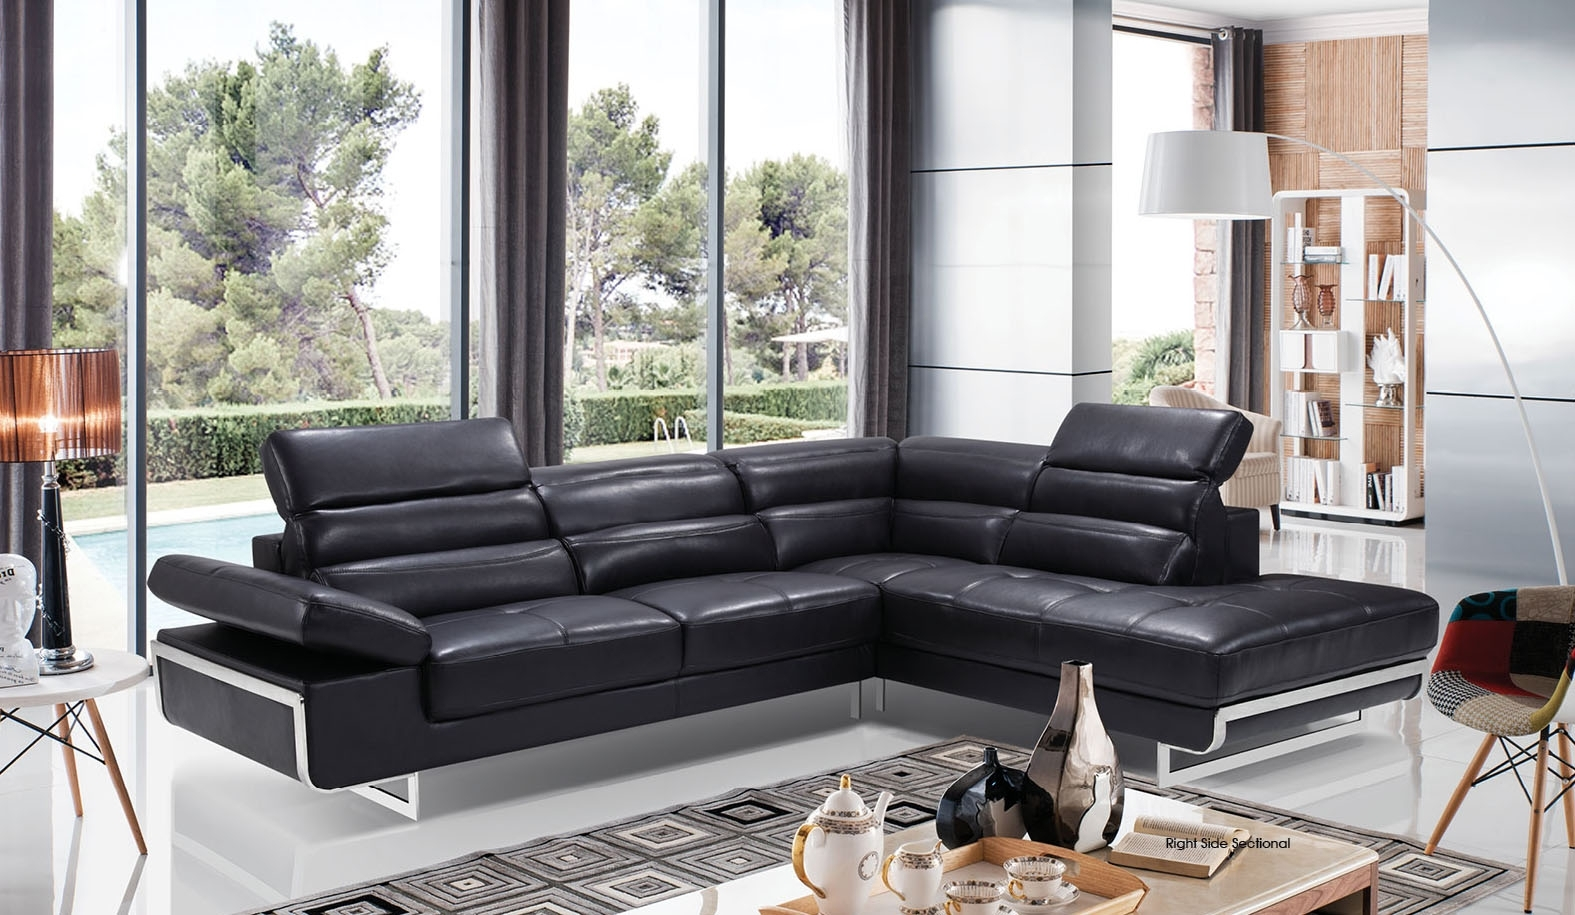 High-Class Italian Leather Living Room Furniture Jacksonville inside Jacksonville Florida Sectional Sofas (Image 4 of 10)